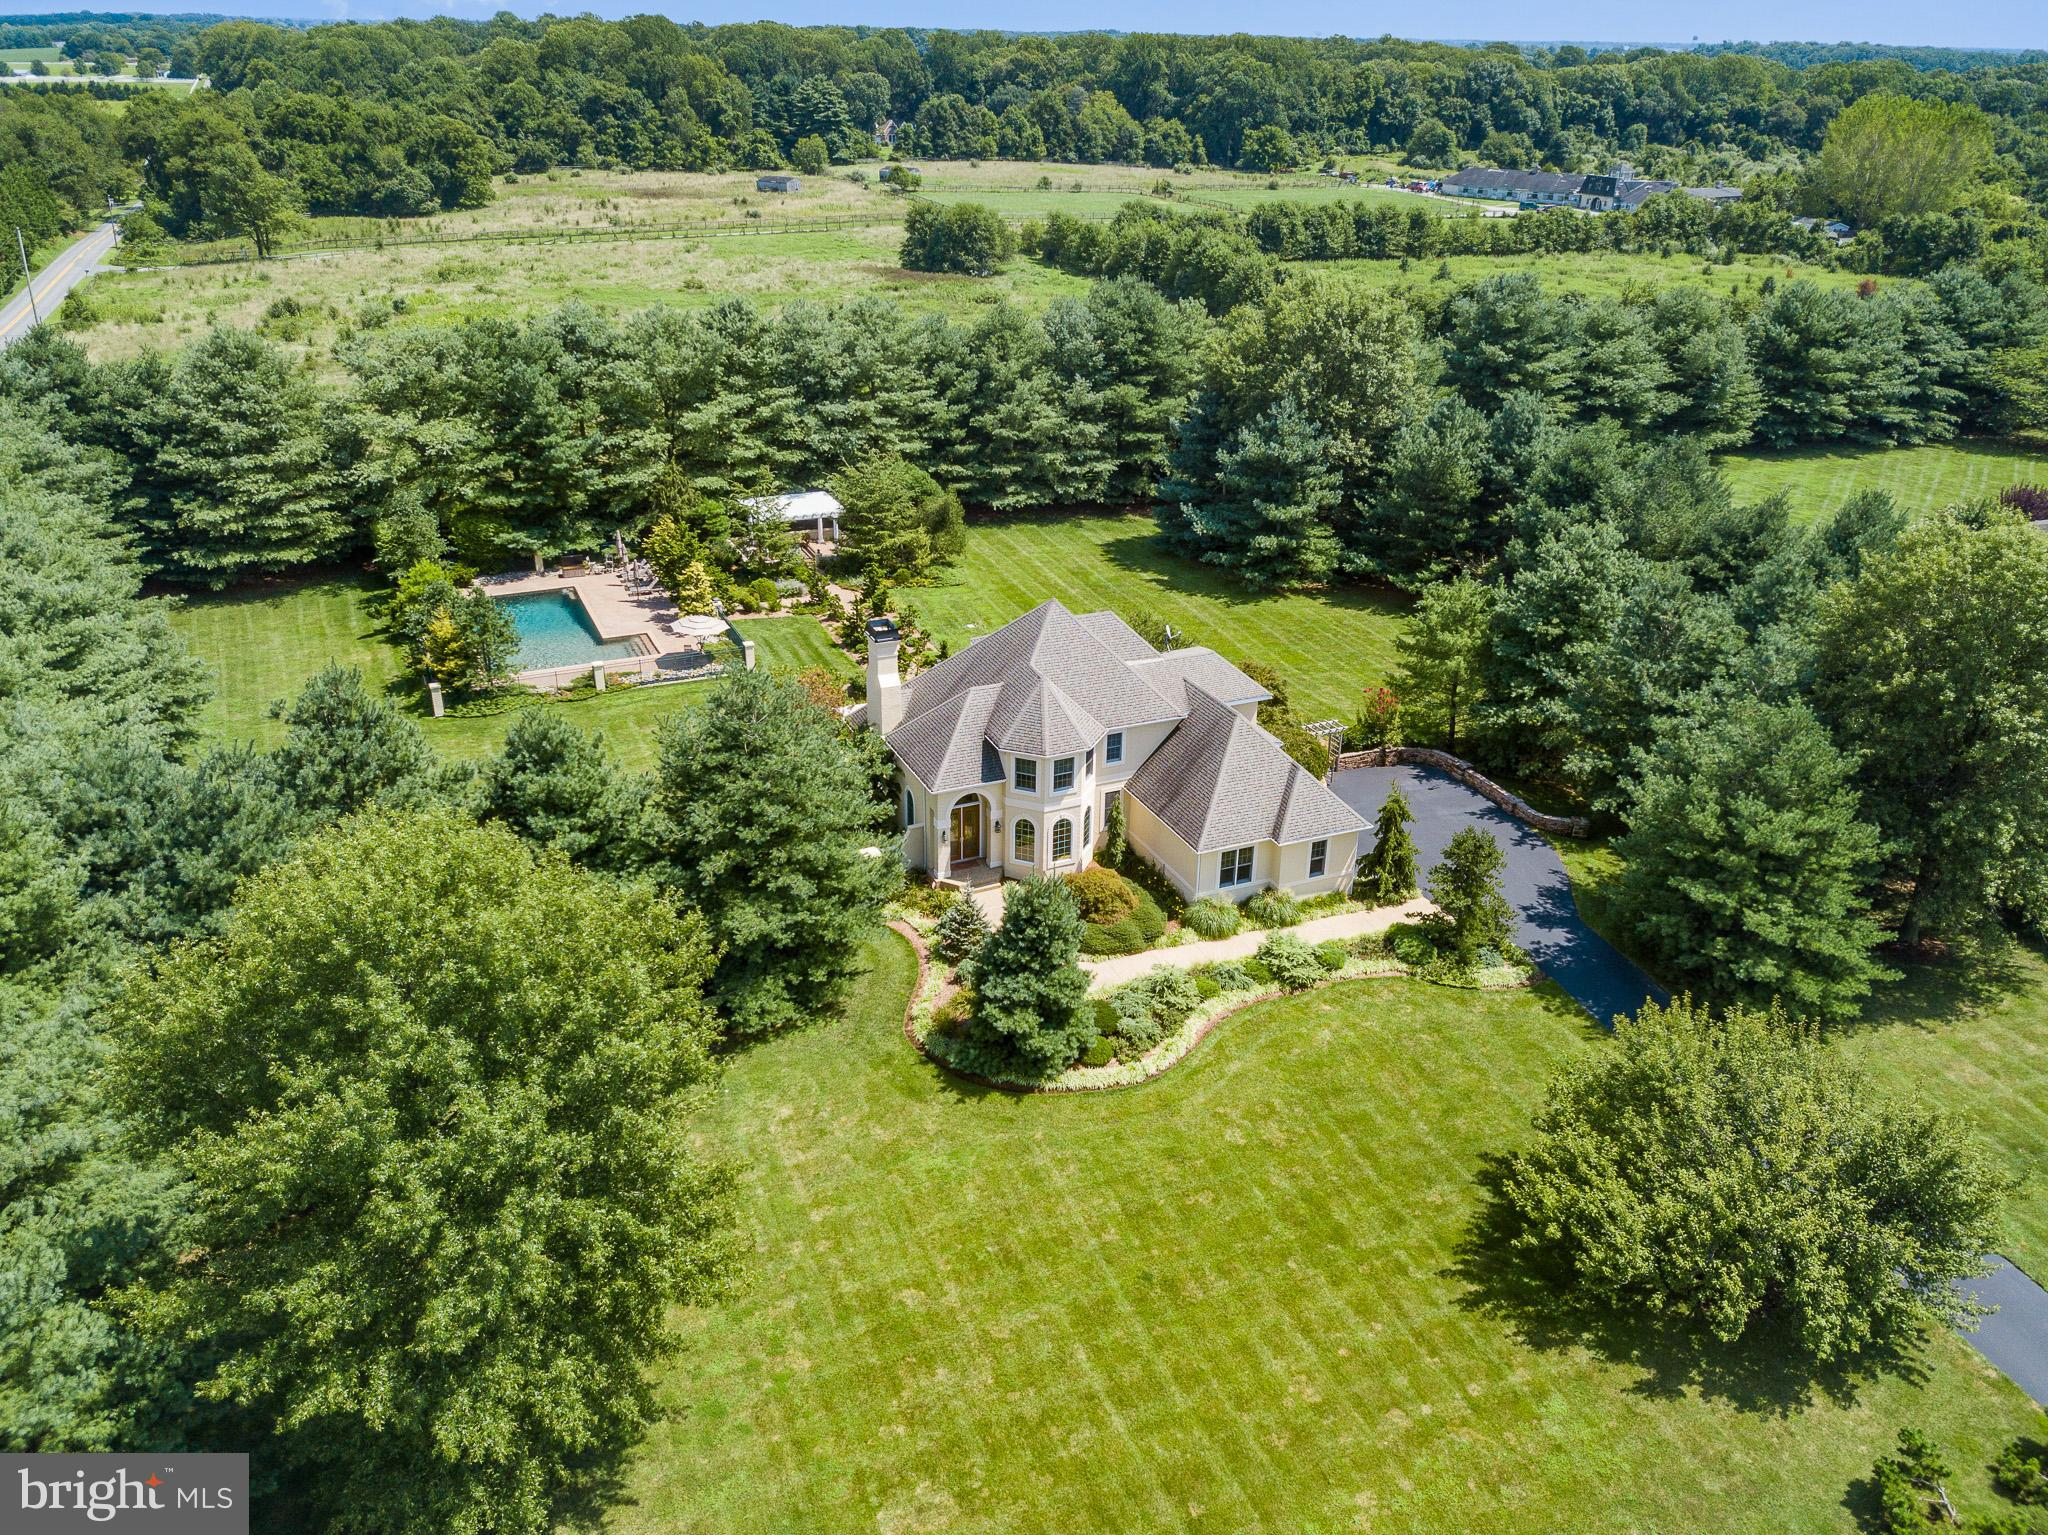 Breathtaking home on Bohemia Mill Pond Dr.! Appreciate custom French country home offering resort-style living on 2-acre landscaped corner lot amid countryside setting. Architecturally alluring 5BRs/4.5 bath beige stucco 3,000 sq.-ft. contemporary home features turret-style front with arched entry and oversized dual-glass front doors. Welcome to sunny 2-story foyer with Palladian window and striking red oak hardwood floors here and throughout home. To right is stunning DR with bump-out trio of Palladian windows and crown molding. Off DR is butler~s pantry, where drink can be mixed and served in moment~s notice thanks to granite-topped glass-pane door cabinets that hold barware and wine refrigerator that keeps bottles at perfect temp! Back of home is volume-ceiling FR with triple window with transom windows, providing cascade of light and uninterrupted views to spectacular outdoor oasis! Maple wood gas FP with ceramic tile hearth anchors room. Gorgeous gourmet kitchen is culinary perfection! Maple cabinets with square marble pulls, tumble marble backsplash and granite countertops with bull-nose finish blend together and complement Jenn-Air SS appliances. Wide countertop serves as bar and backs to bump-out triple window morning nook. Angled entrance to 1st-floor owner~s suite with tray ceiling, DD walk-in closet and 2 floor-to-ceiling windows with French doors that grant access to deck. DD bath features his-and-hers separate maple vanities, custom-tile, soaking tub, shower, and private toilet. Plus, laundry room and 2-car garage. Upper level has BR1 with bump-out triple window, and walk-in closet. Full bath is shared with BR2 and while each BR has its own maple vanity, 2 pocket doors access shared tub/shower. BR3 has its own private bath. Value sunken 18 x 19 bonus room! Finished 1000 sq.-ft. LL is another level of living of billiards room, full wet bar and all-glass wine closet, and exercise room. Also, note BR and bath on this level for overnight guests, offering utmost privacy! Backyard is amazing! 2 separate decks share 1 set of steps that lead to circular brick paver patio edged with stone walls. Landscaped brick paver walkway leads to Pergola with firepit and views to picturesque farmland. Adjacent is green wrought iron fence enveloping in-ground pool and patio. Property is fringed with tall evergreens creating natural privacy screen. Fabulous indoor and outdoor entertaining! True stay-cation! Something for everyone in this beauty in Bohemia Mill Pond!